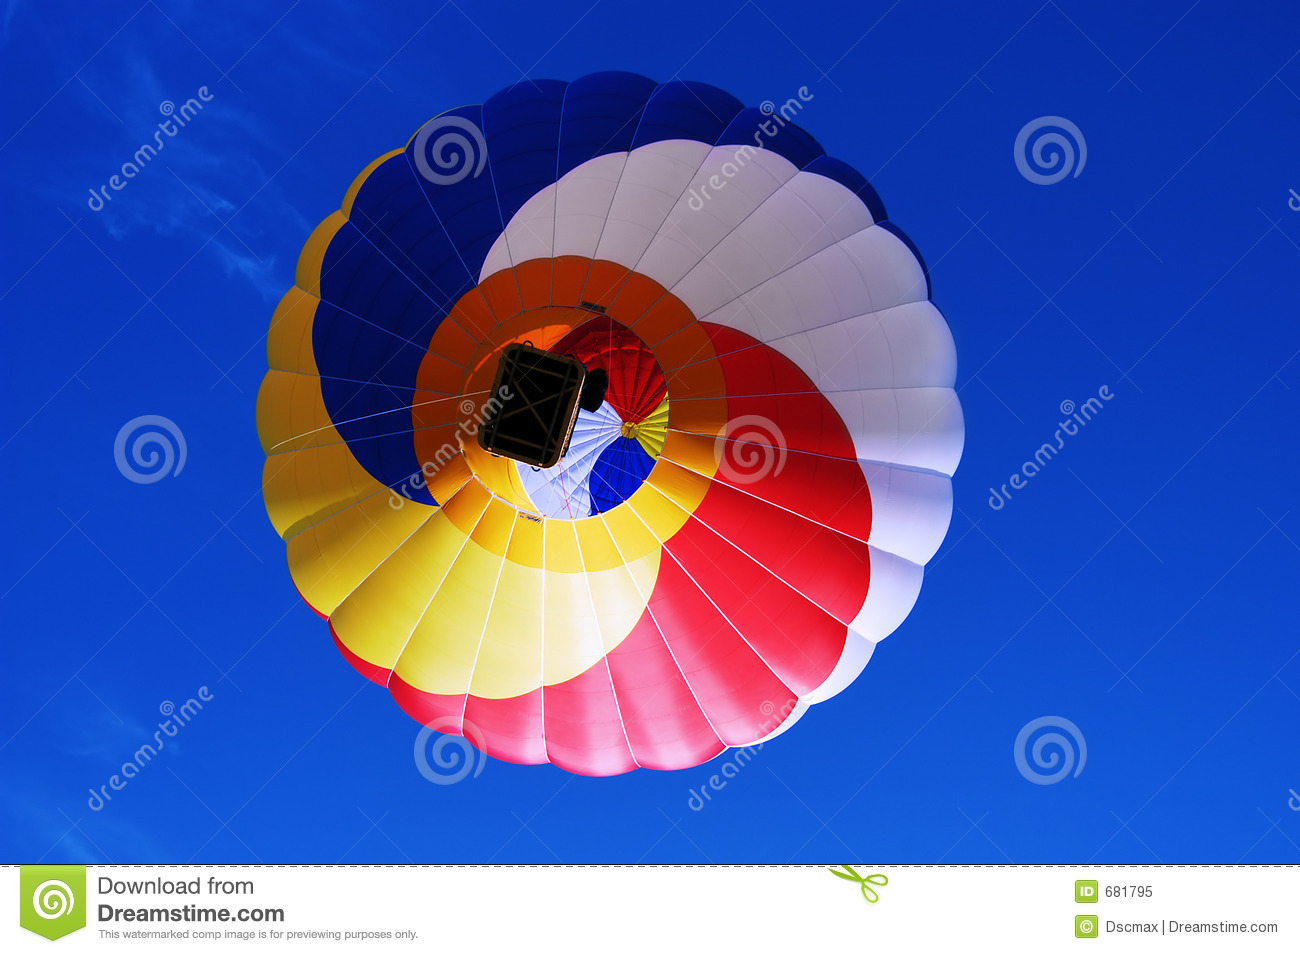 Multi colored hot air balloon on a blue sky 2